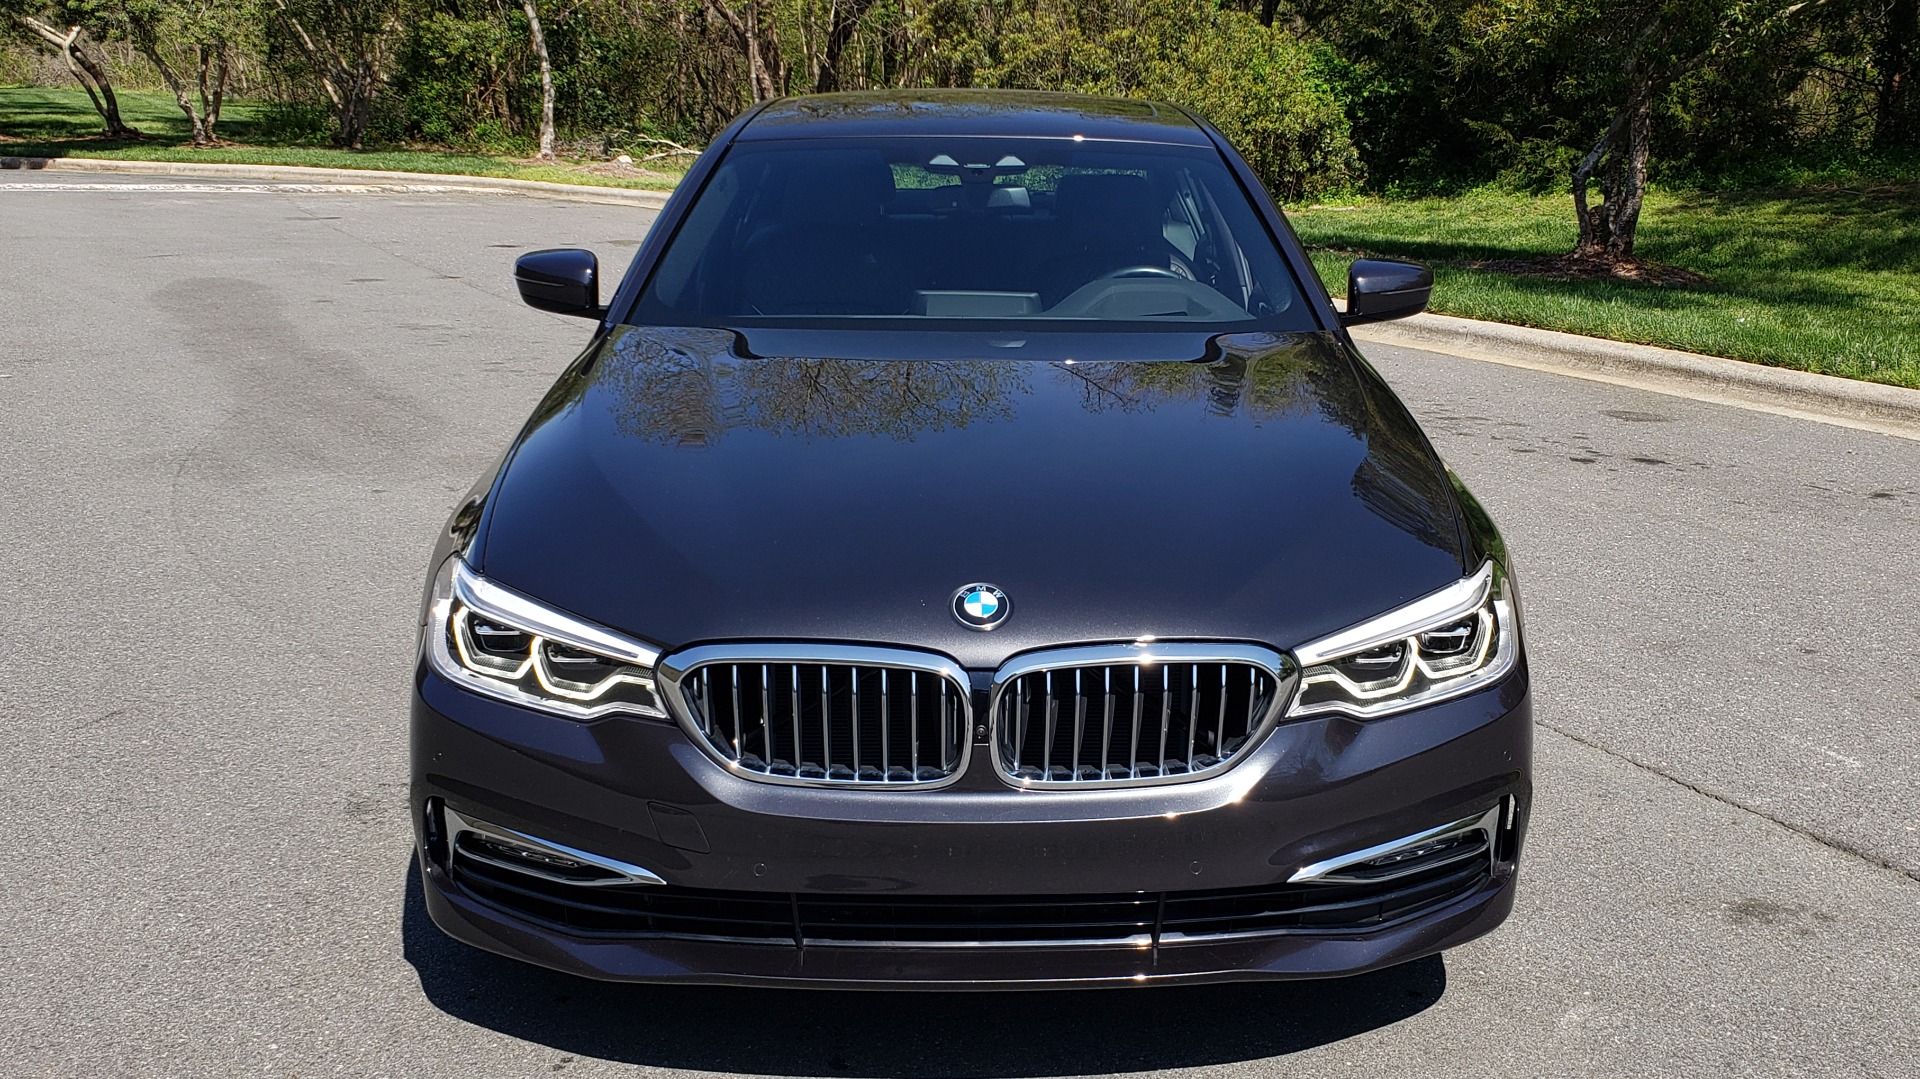 Used 2017 BMW 5 SERIES 540I PREMIUM / DRVR ASST PLUS / NAV / SNF / HARMAN/KARDON for sale Sold at Formula Imports in Charlotte NC 28227 18